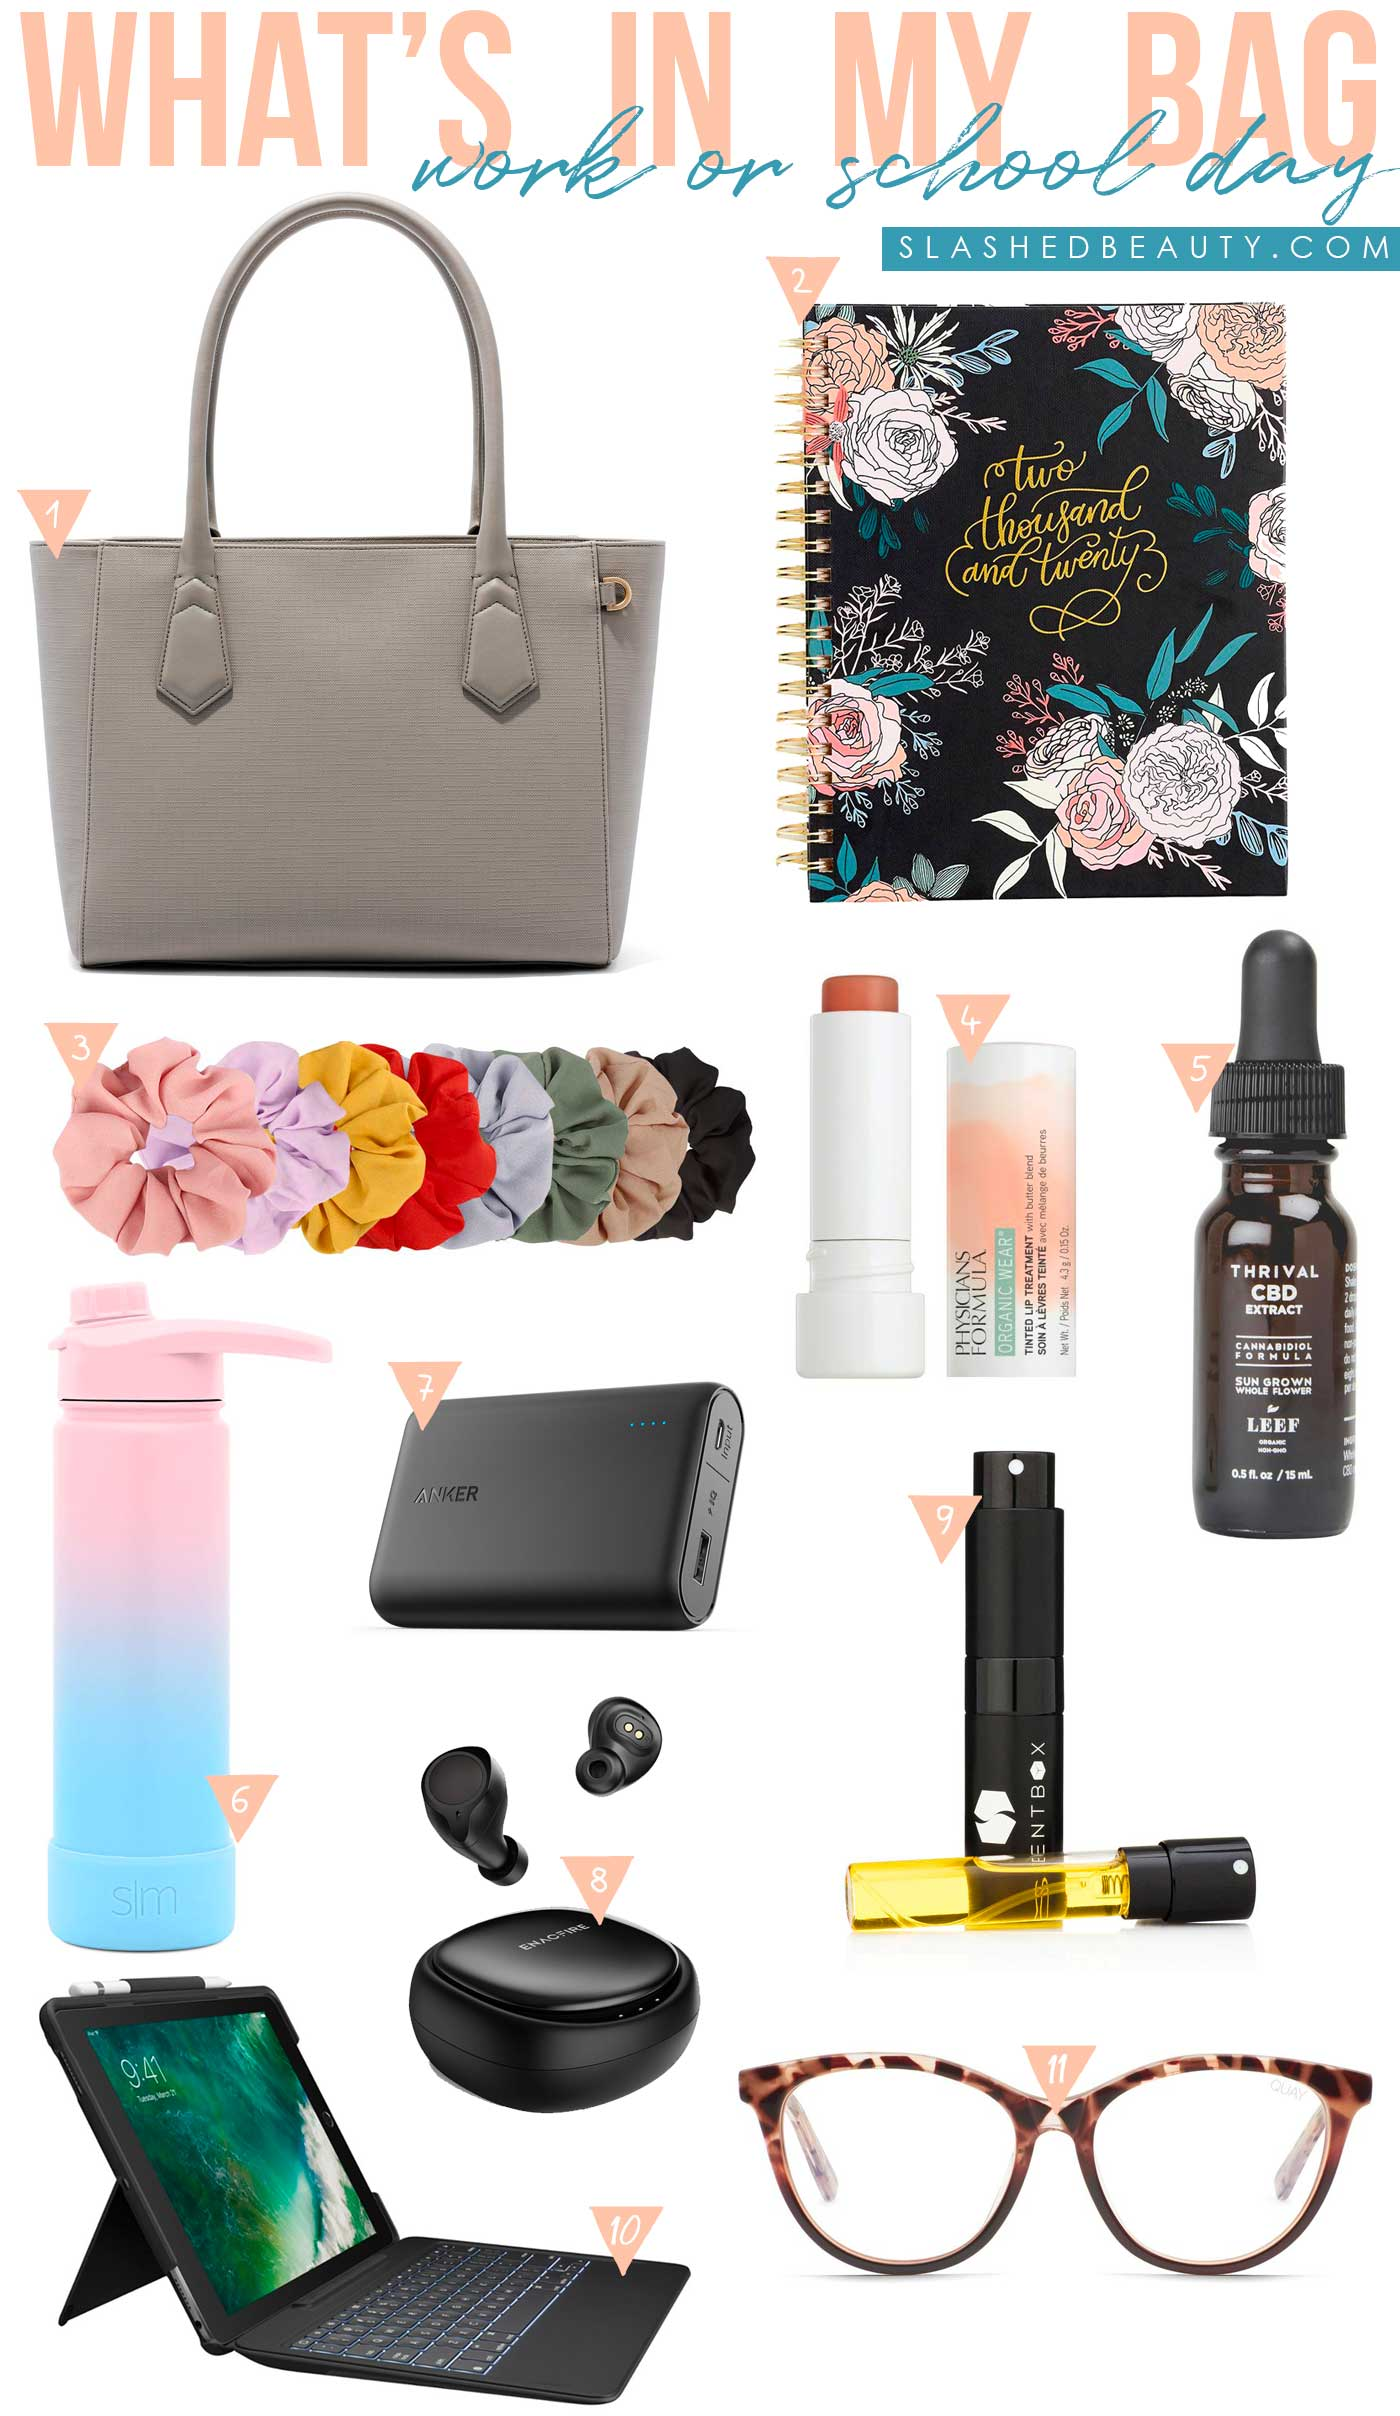 What's In My Bag: Work & School Days | What to pack in your bag if you spend all day at work and school | Slashed Beauty